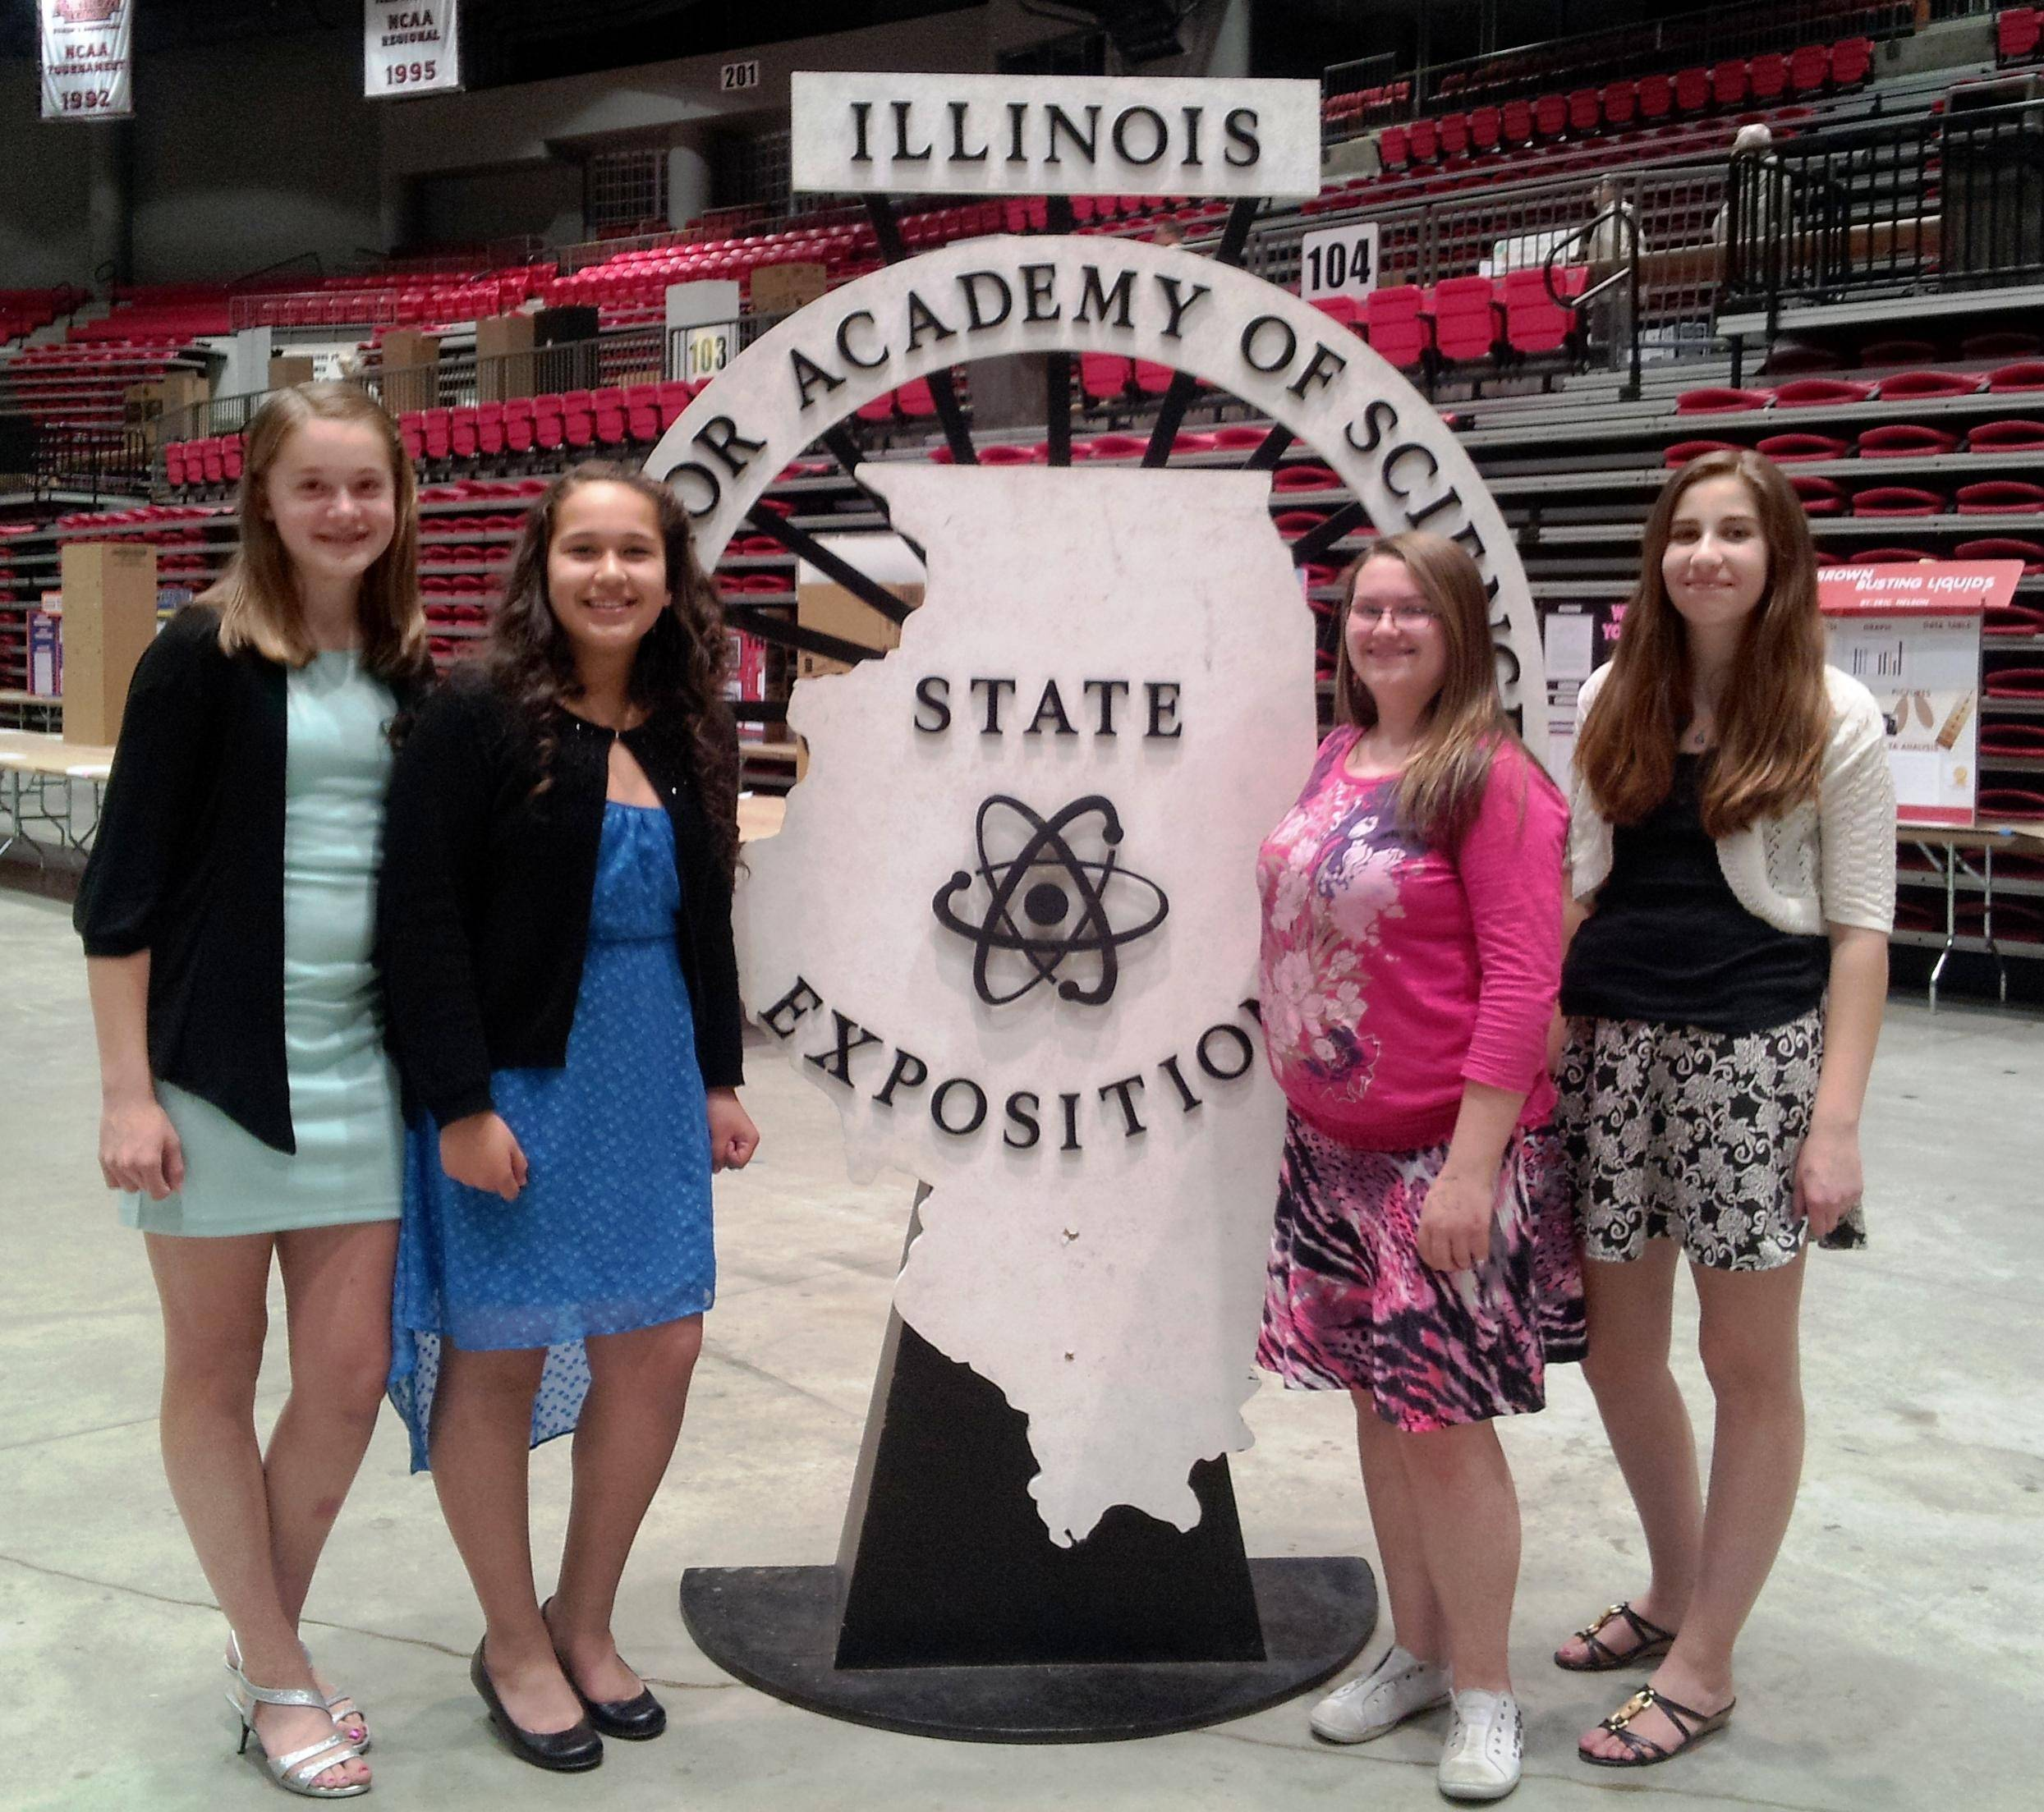 Larsen Middle School students, from left, Kylie Graves, Nereida Rosas, Camberlei Lauff, and Madeline Schaeffer, compete at the Illinois Junior Academy of Science State Competition in May.